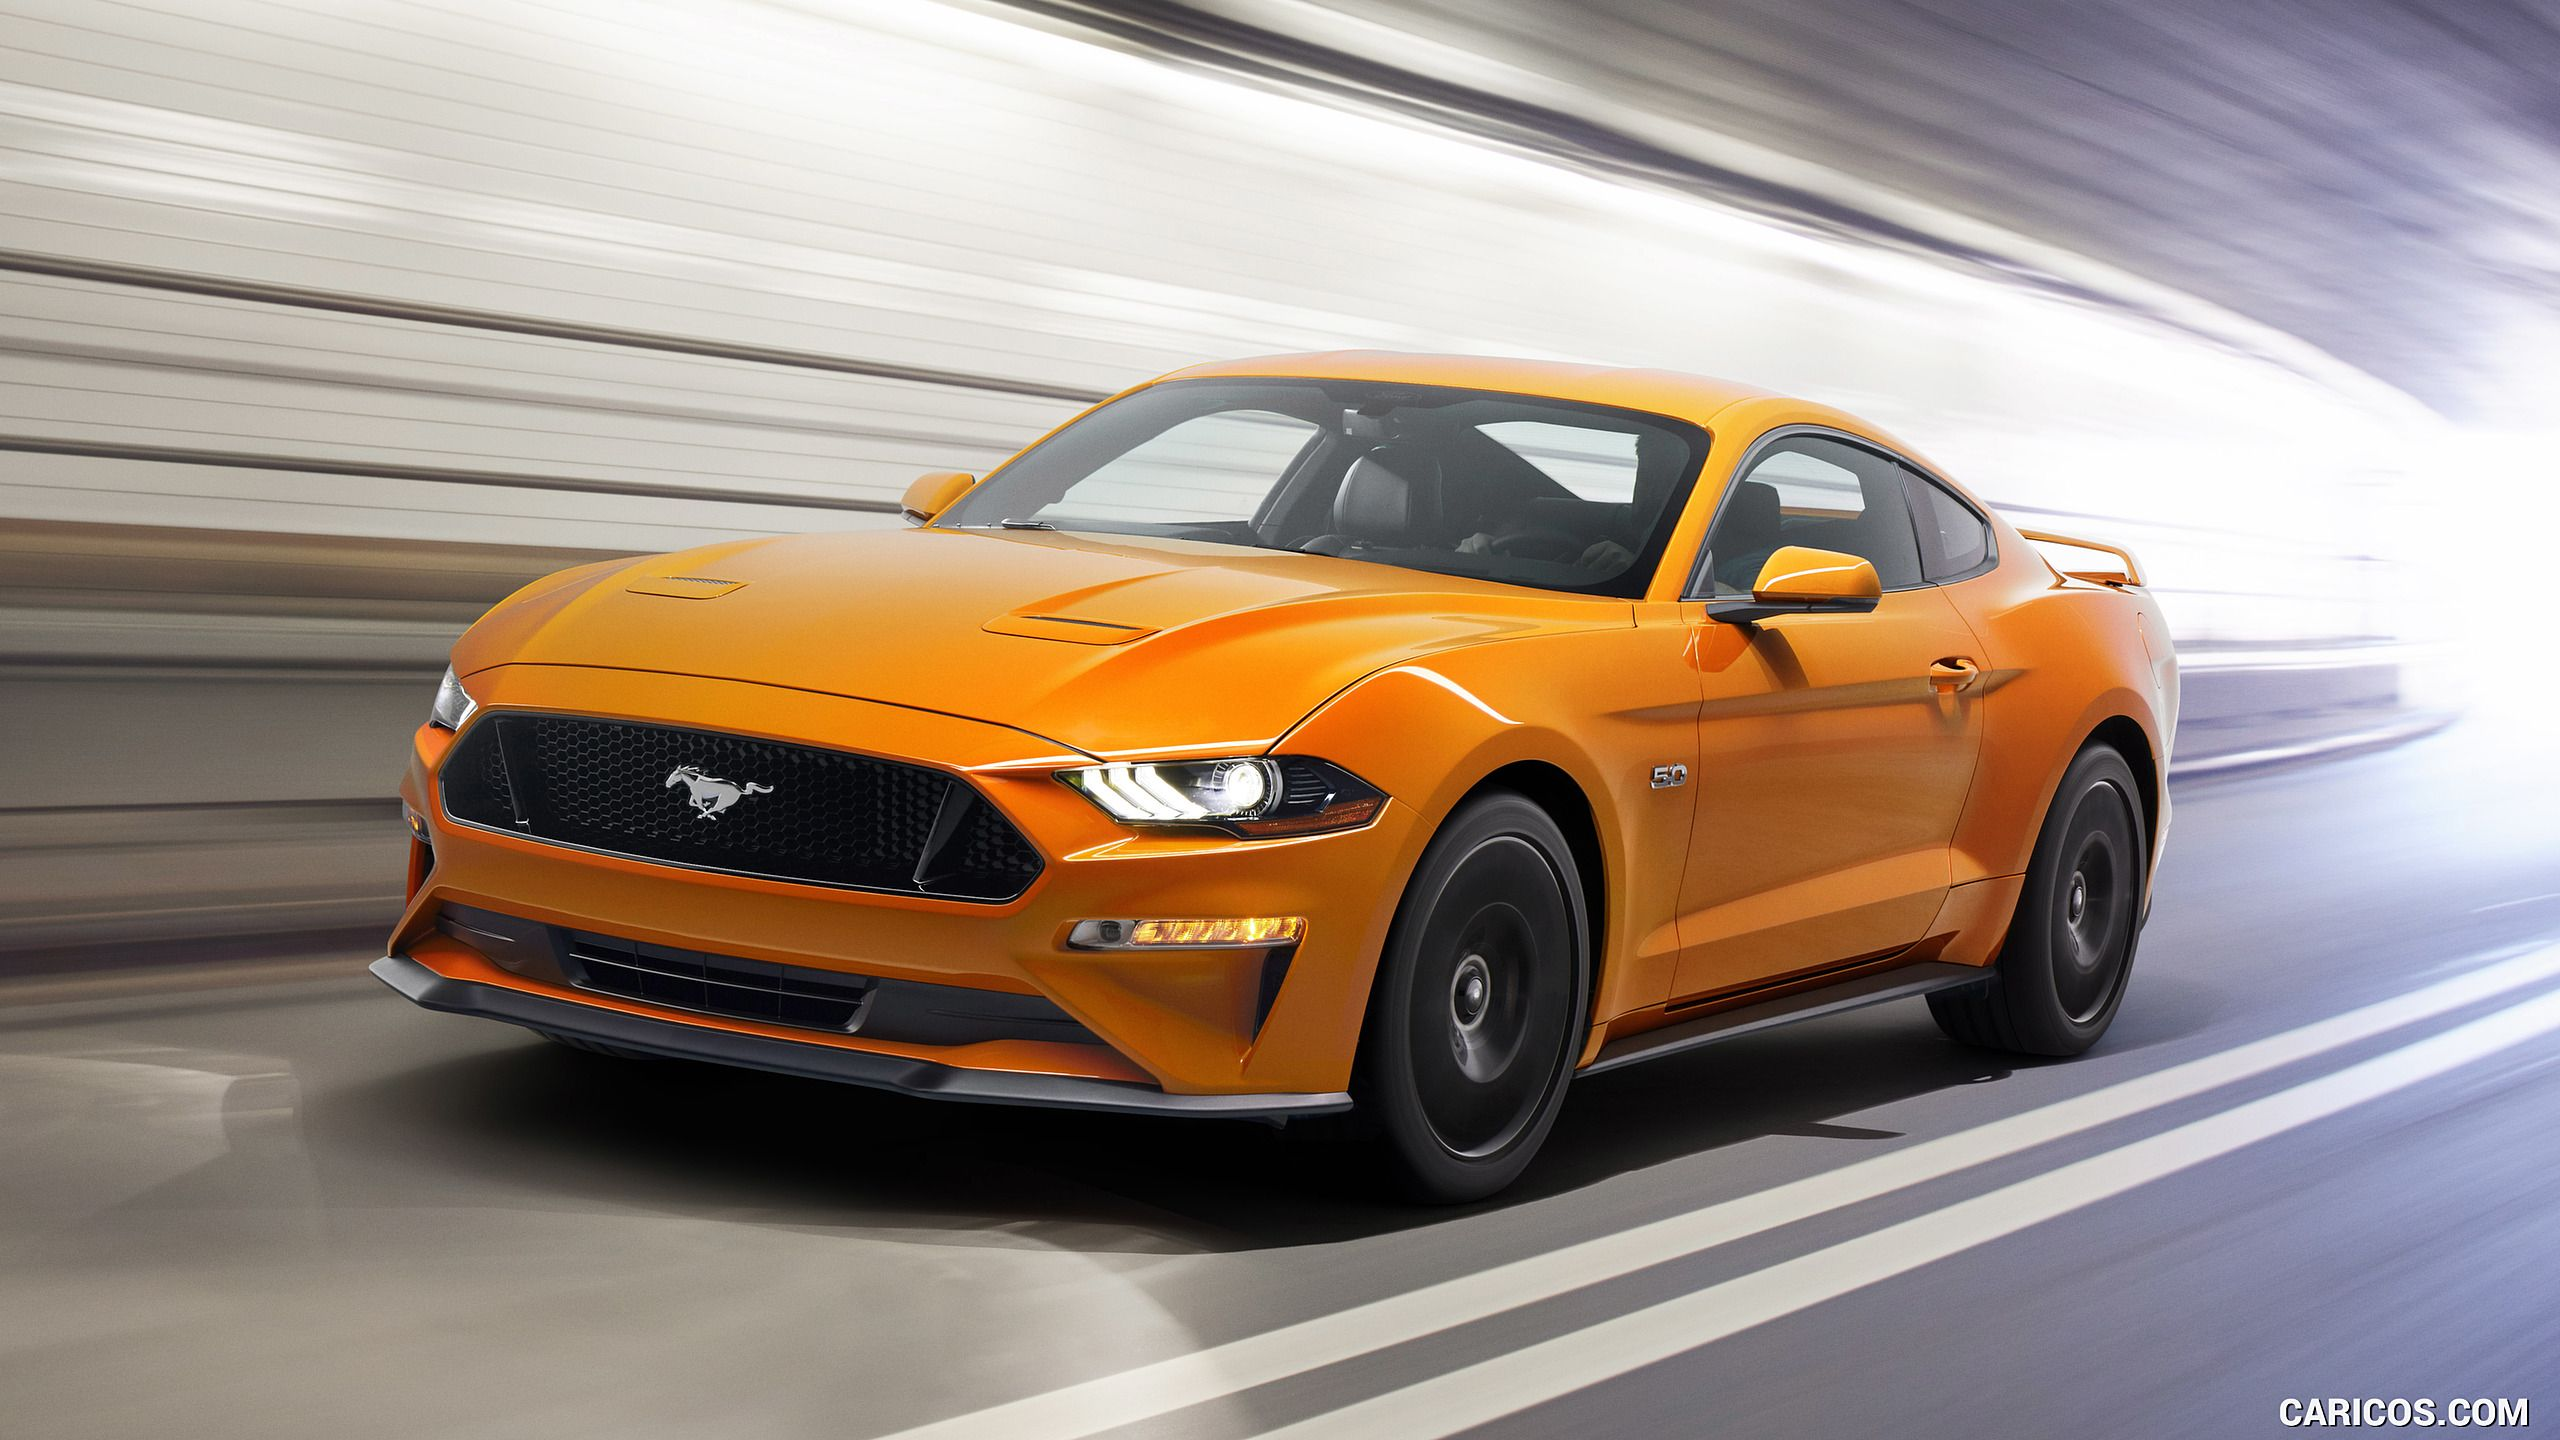 2018 ford mustang orange fury hd wallpaper 2018 ford mustang orange fury pinterest fury review ford mustang and ford